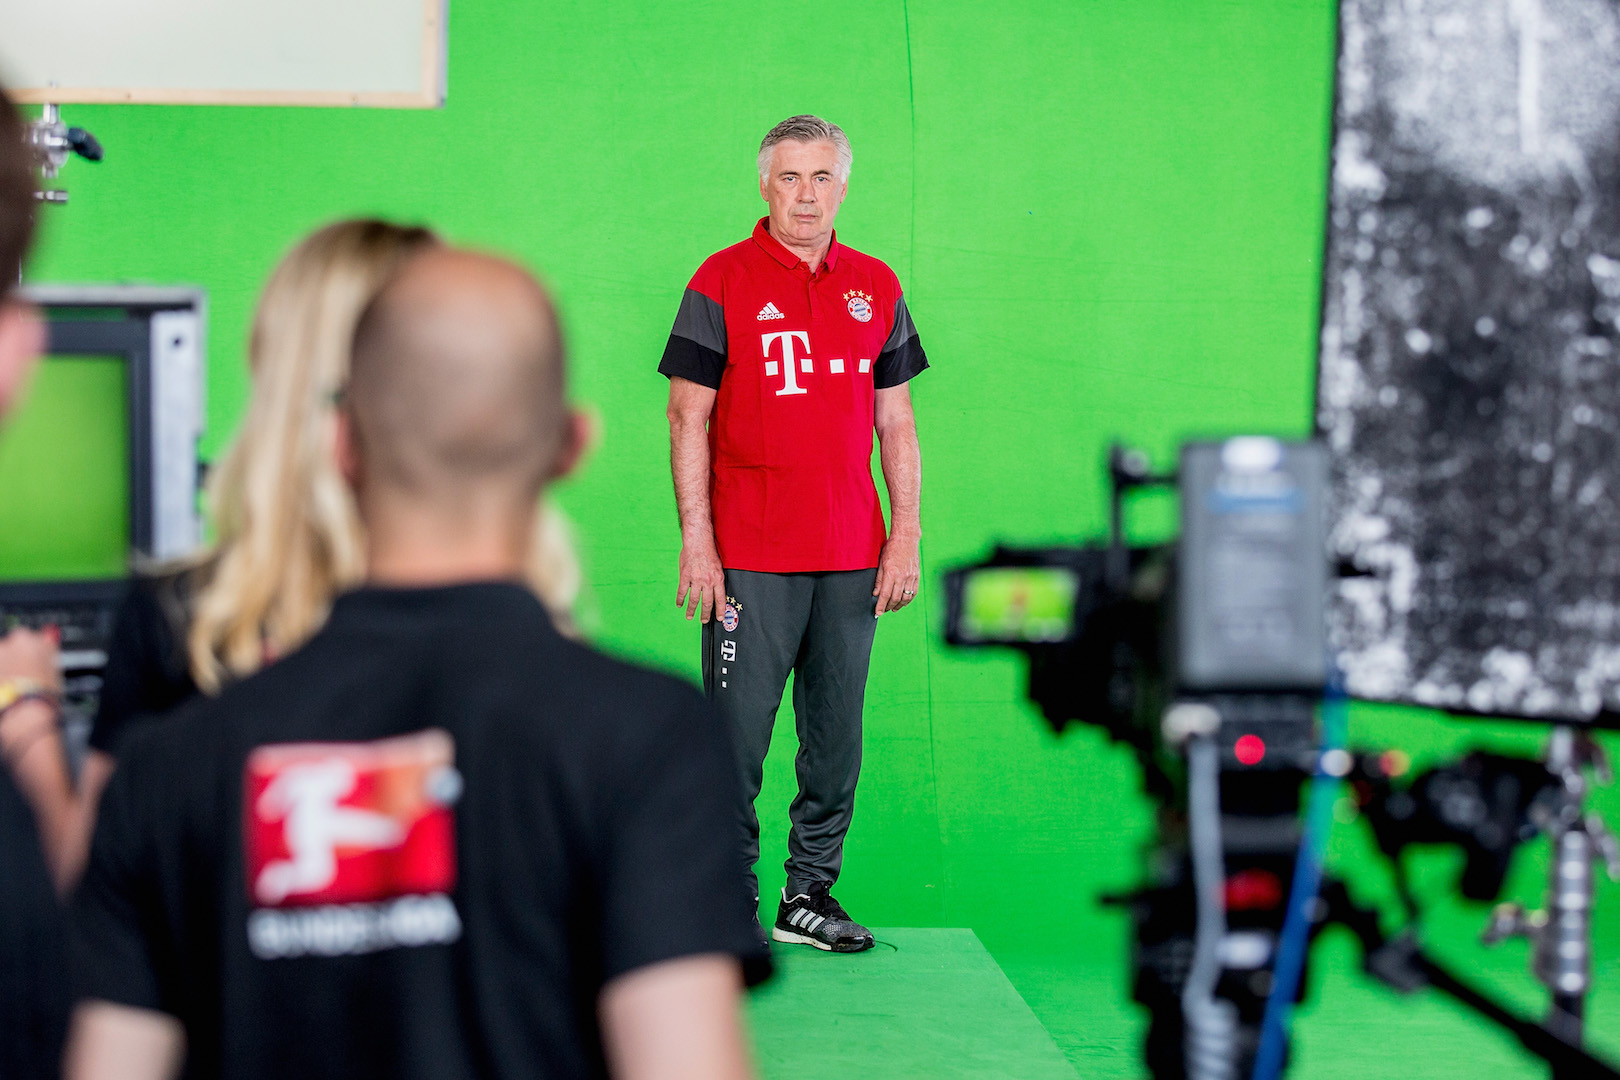 MUNICH, BAVARIA - AUGUST 10: Carlo Ancelotti is seen in a recording studio during the DFL Media Day on August, 10, 2016 in Munich, Germany. (Photo by Jan Hetfleisch/Getty Images For DFL)